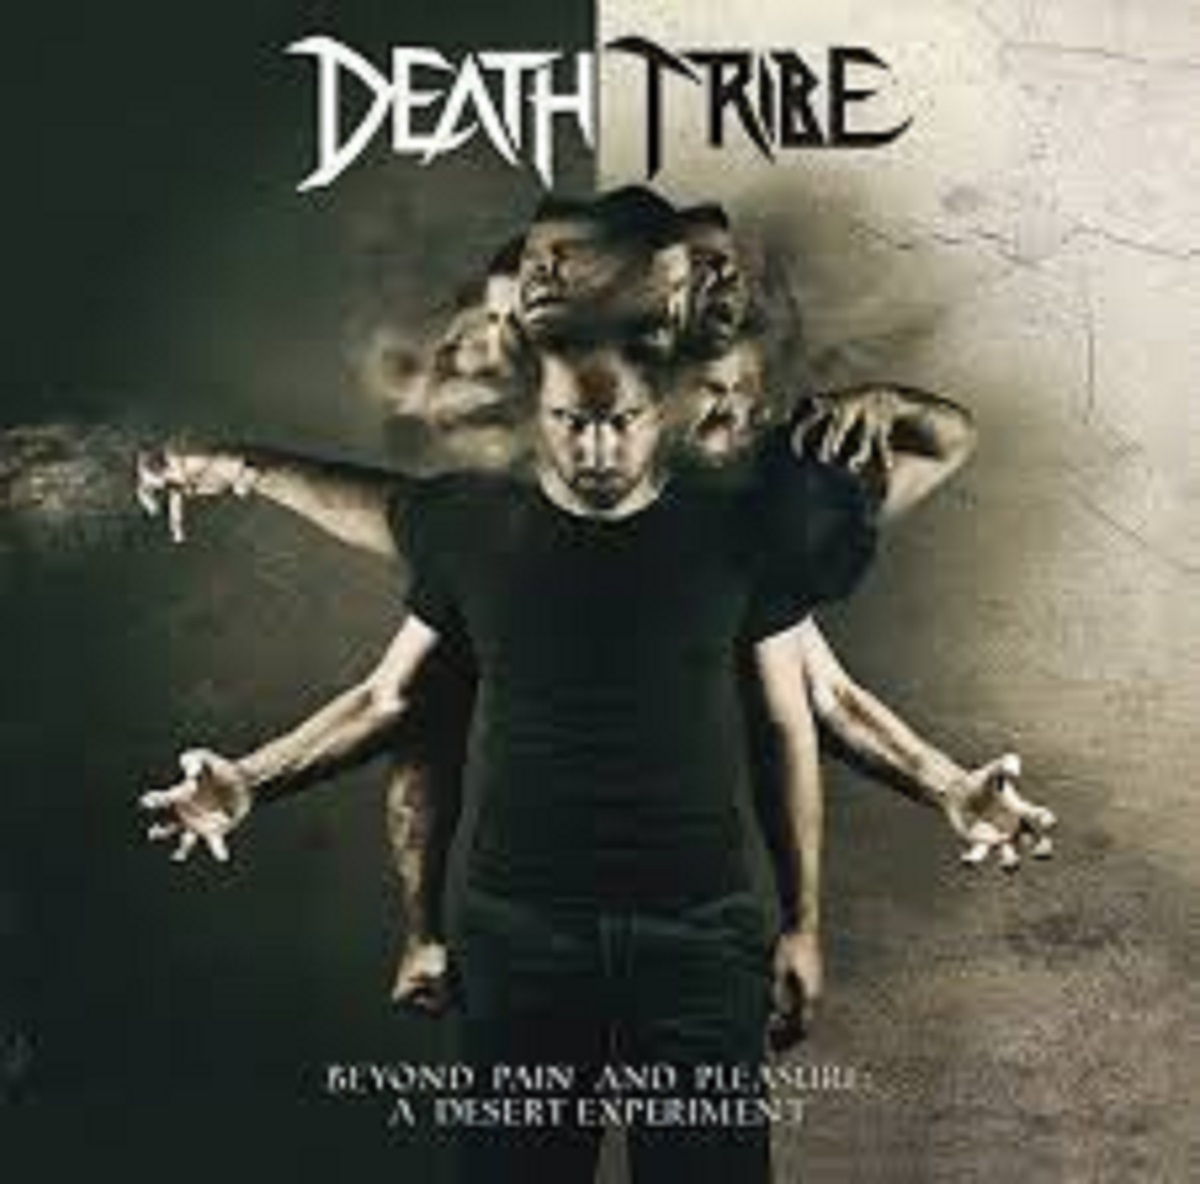 Review: Death Tribe – Beyond Pain And Pleasure: A Desert Experiment